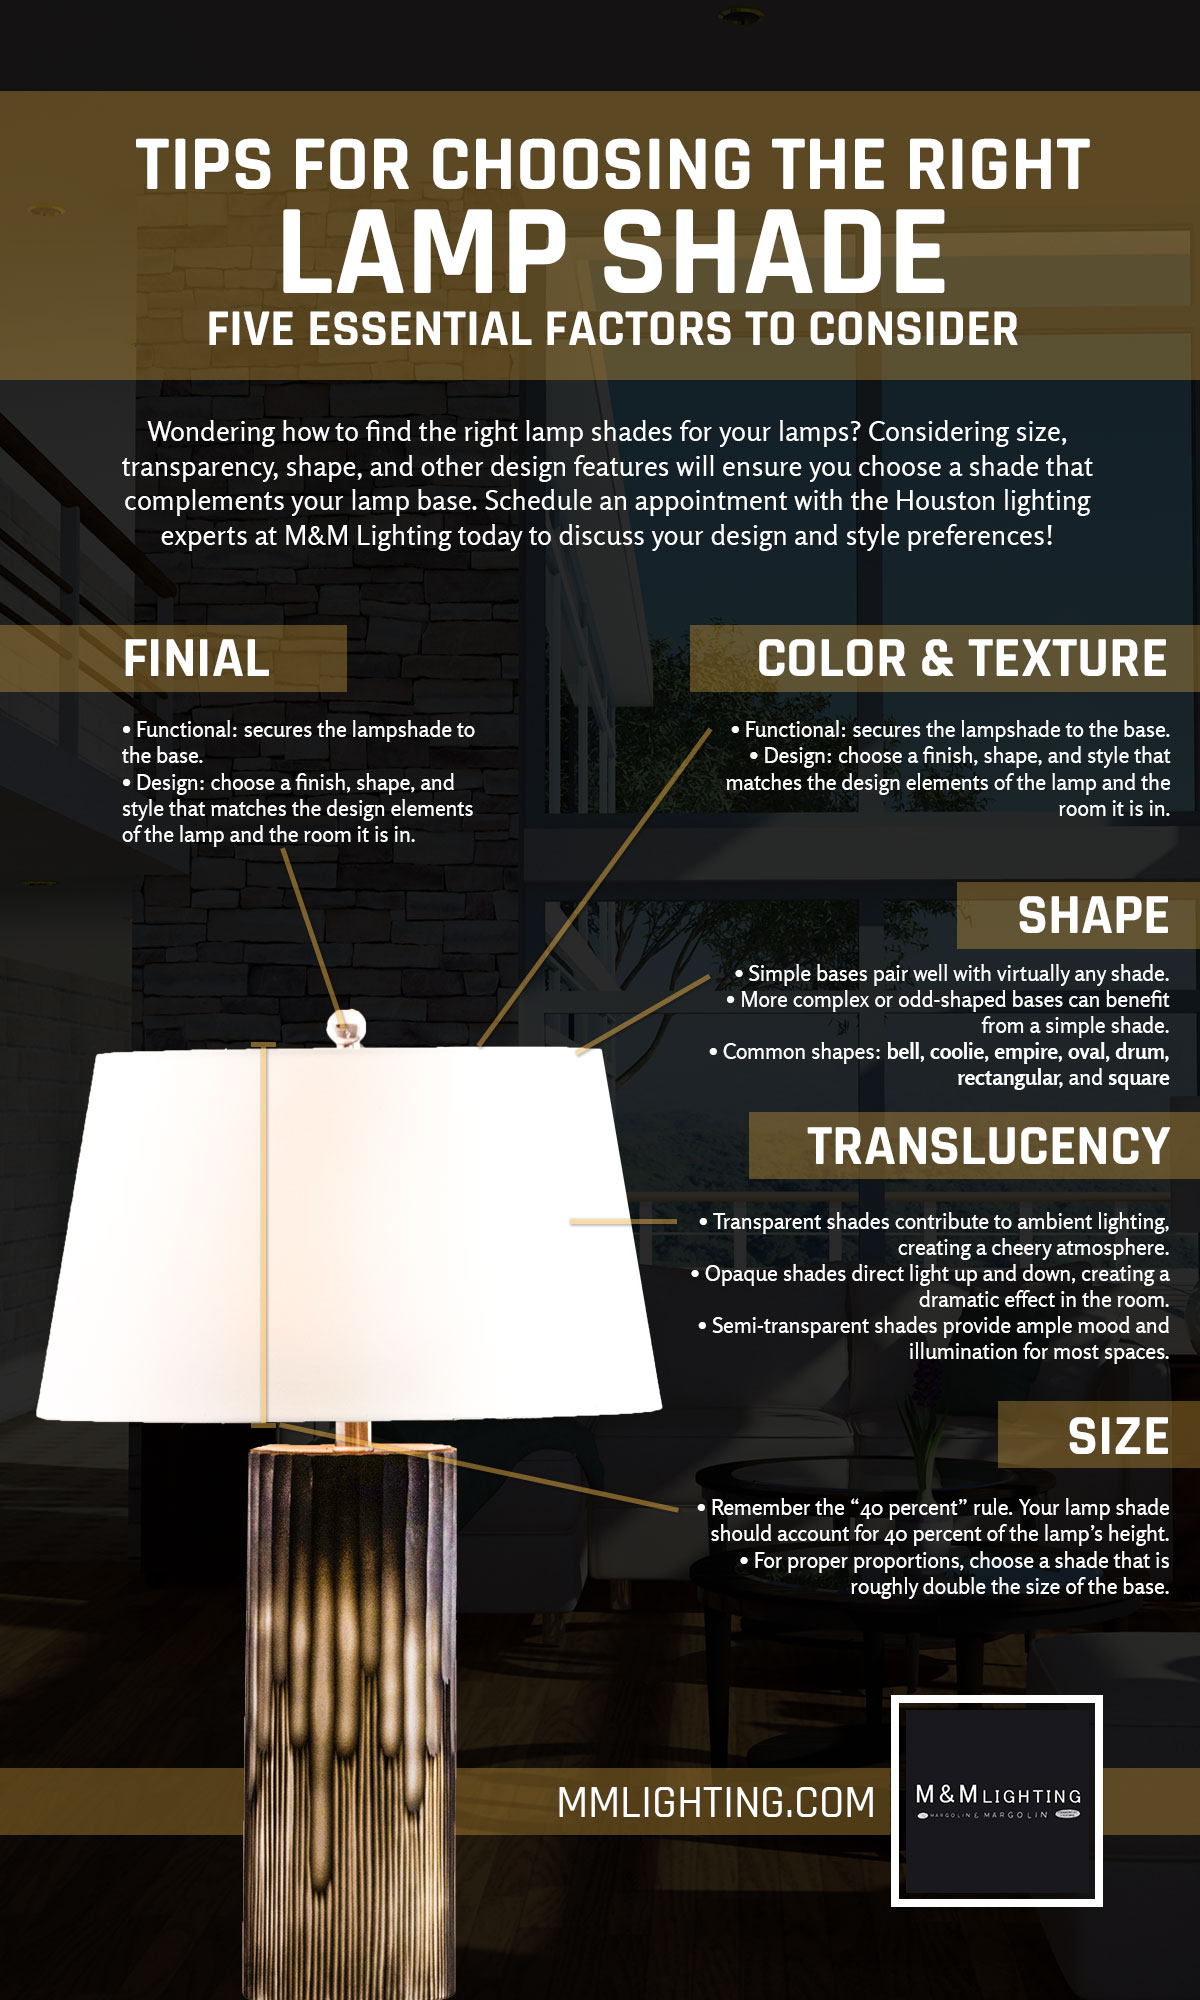 Lamp shades houston tips for choosing the right shade lamp shade design considerations aloadofball Images